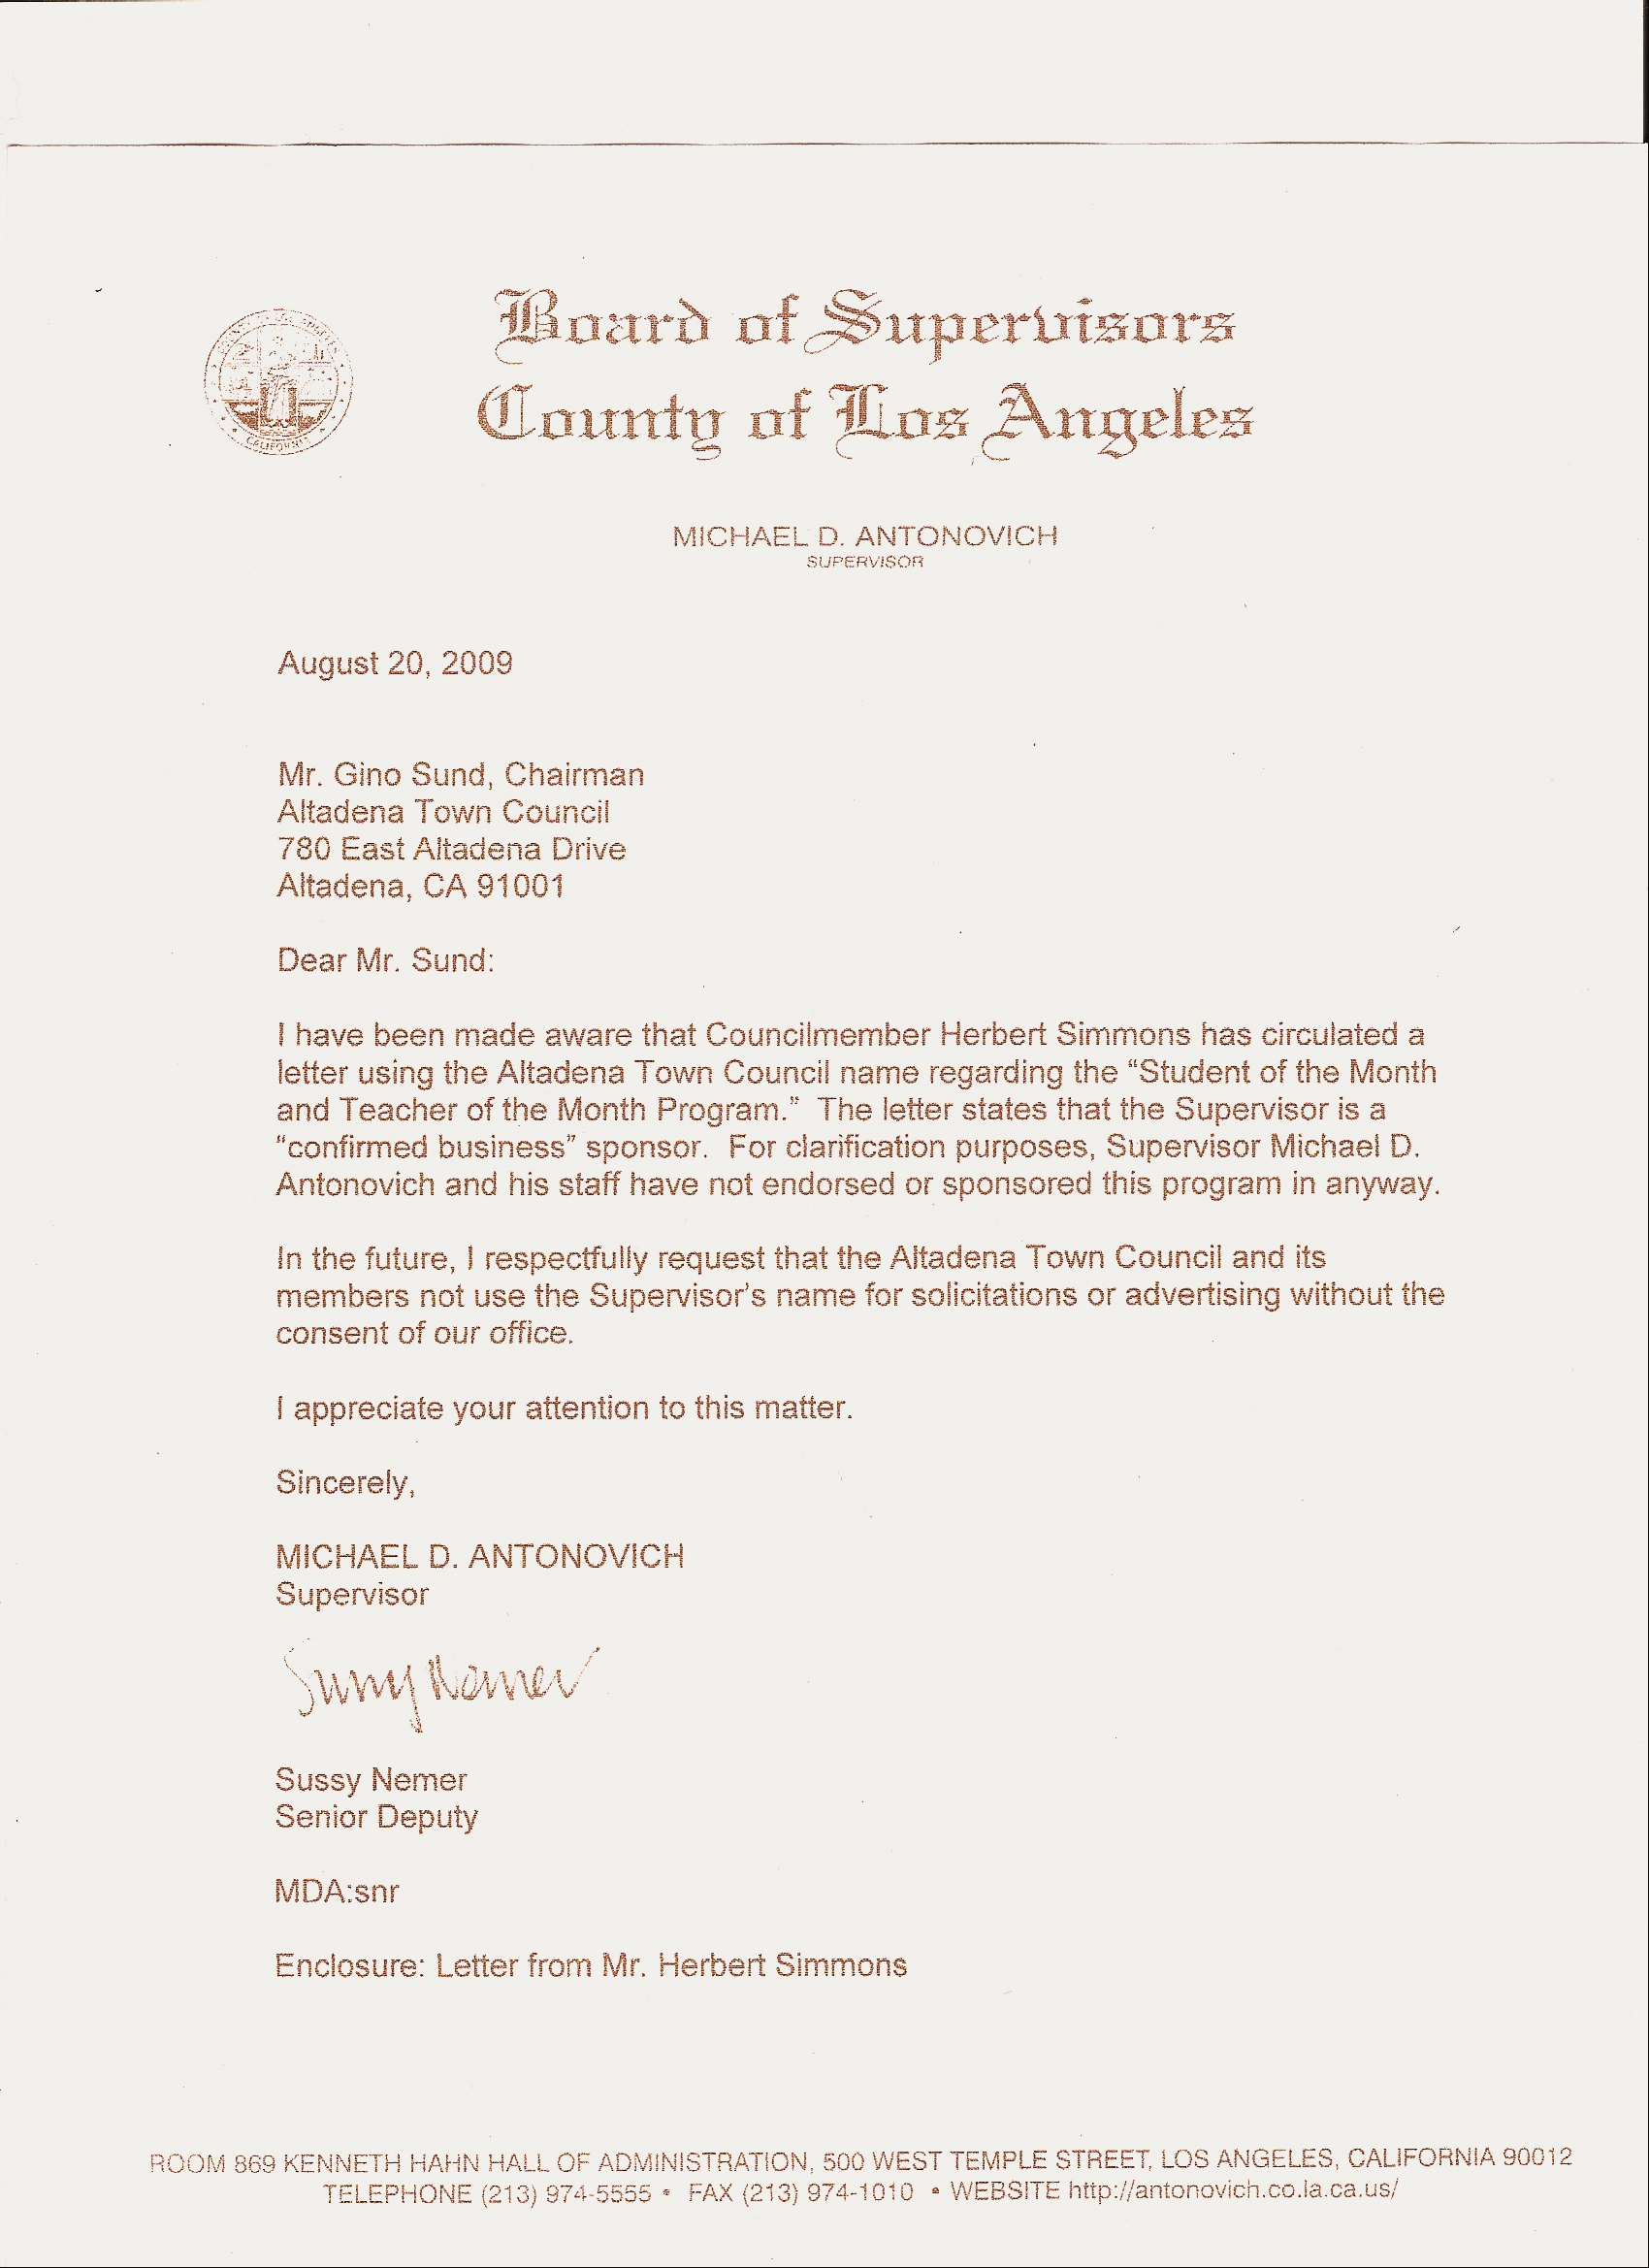 Antonovich says simmons used town councils name to seek support 6a00d83455629c69e20120a70639d7970bg thecheapjerseys Image collections